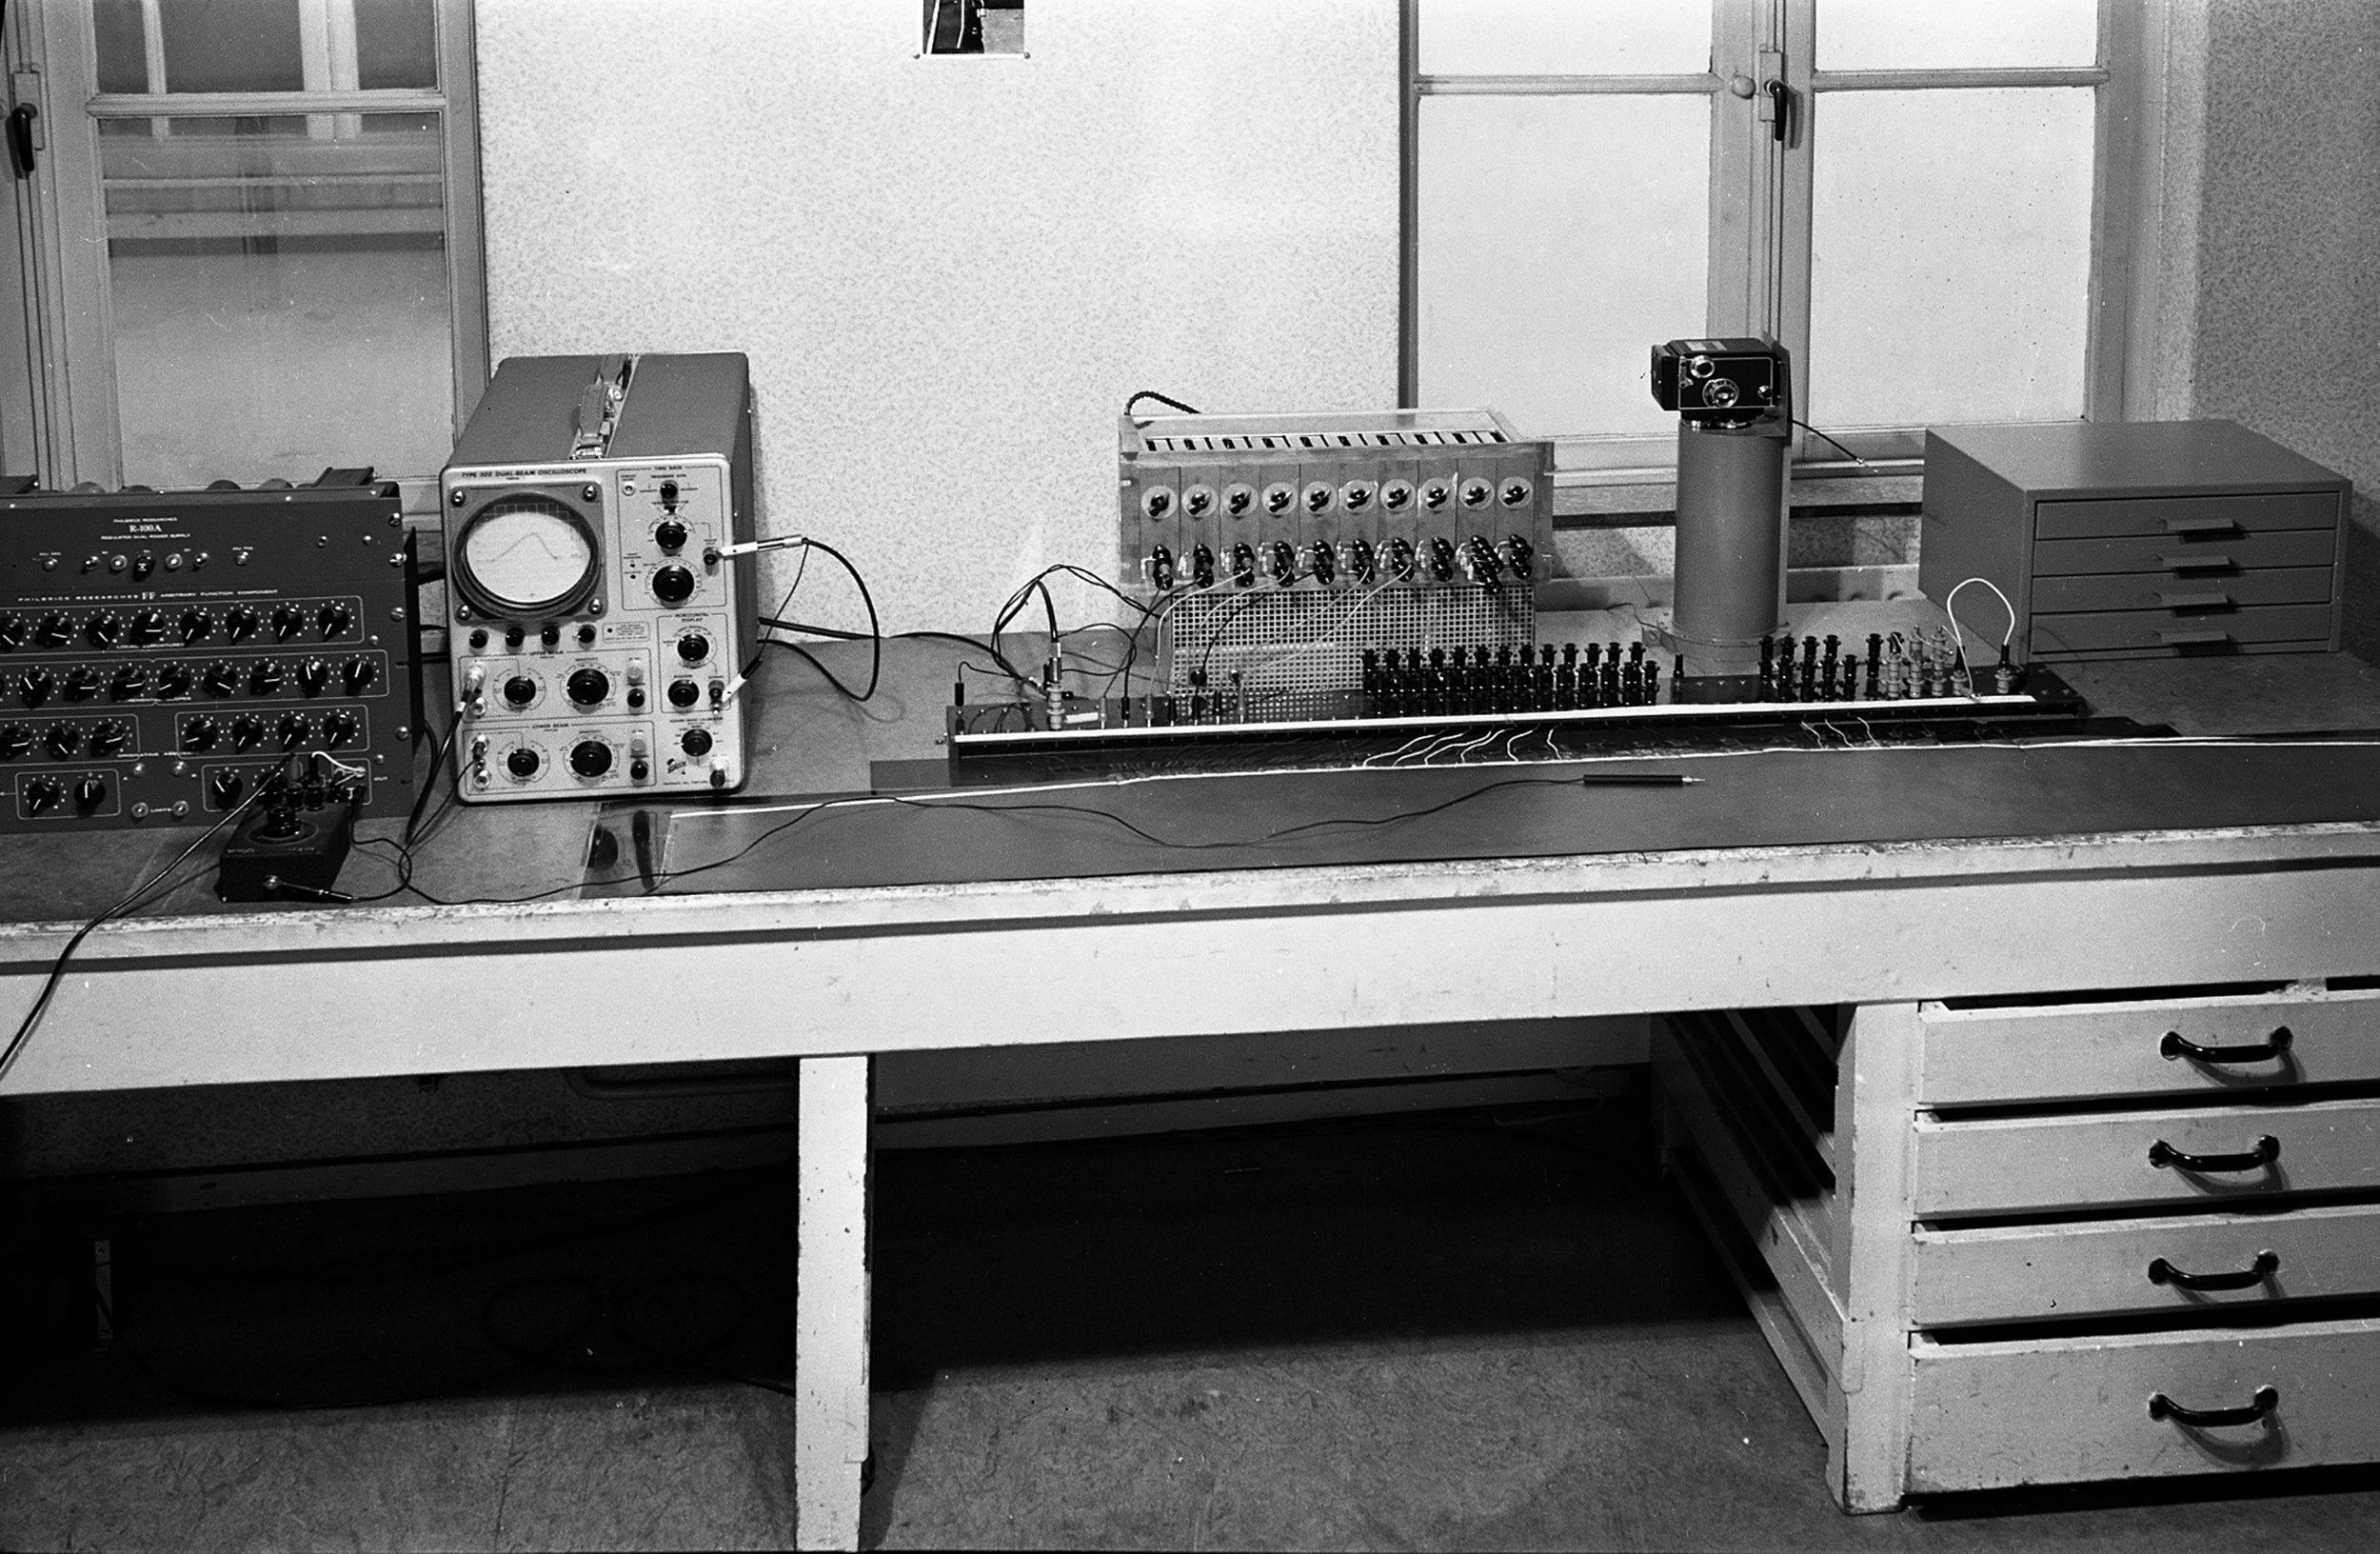 field computing setup using conductive paper at Rijkswaterstaat (Dutch Water Authority), early 1950's.